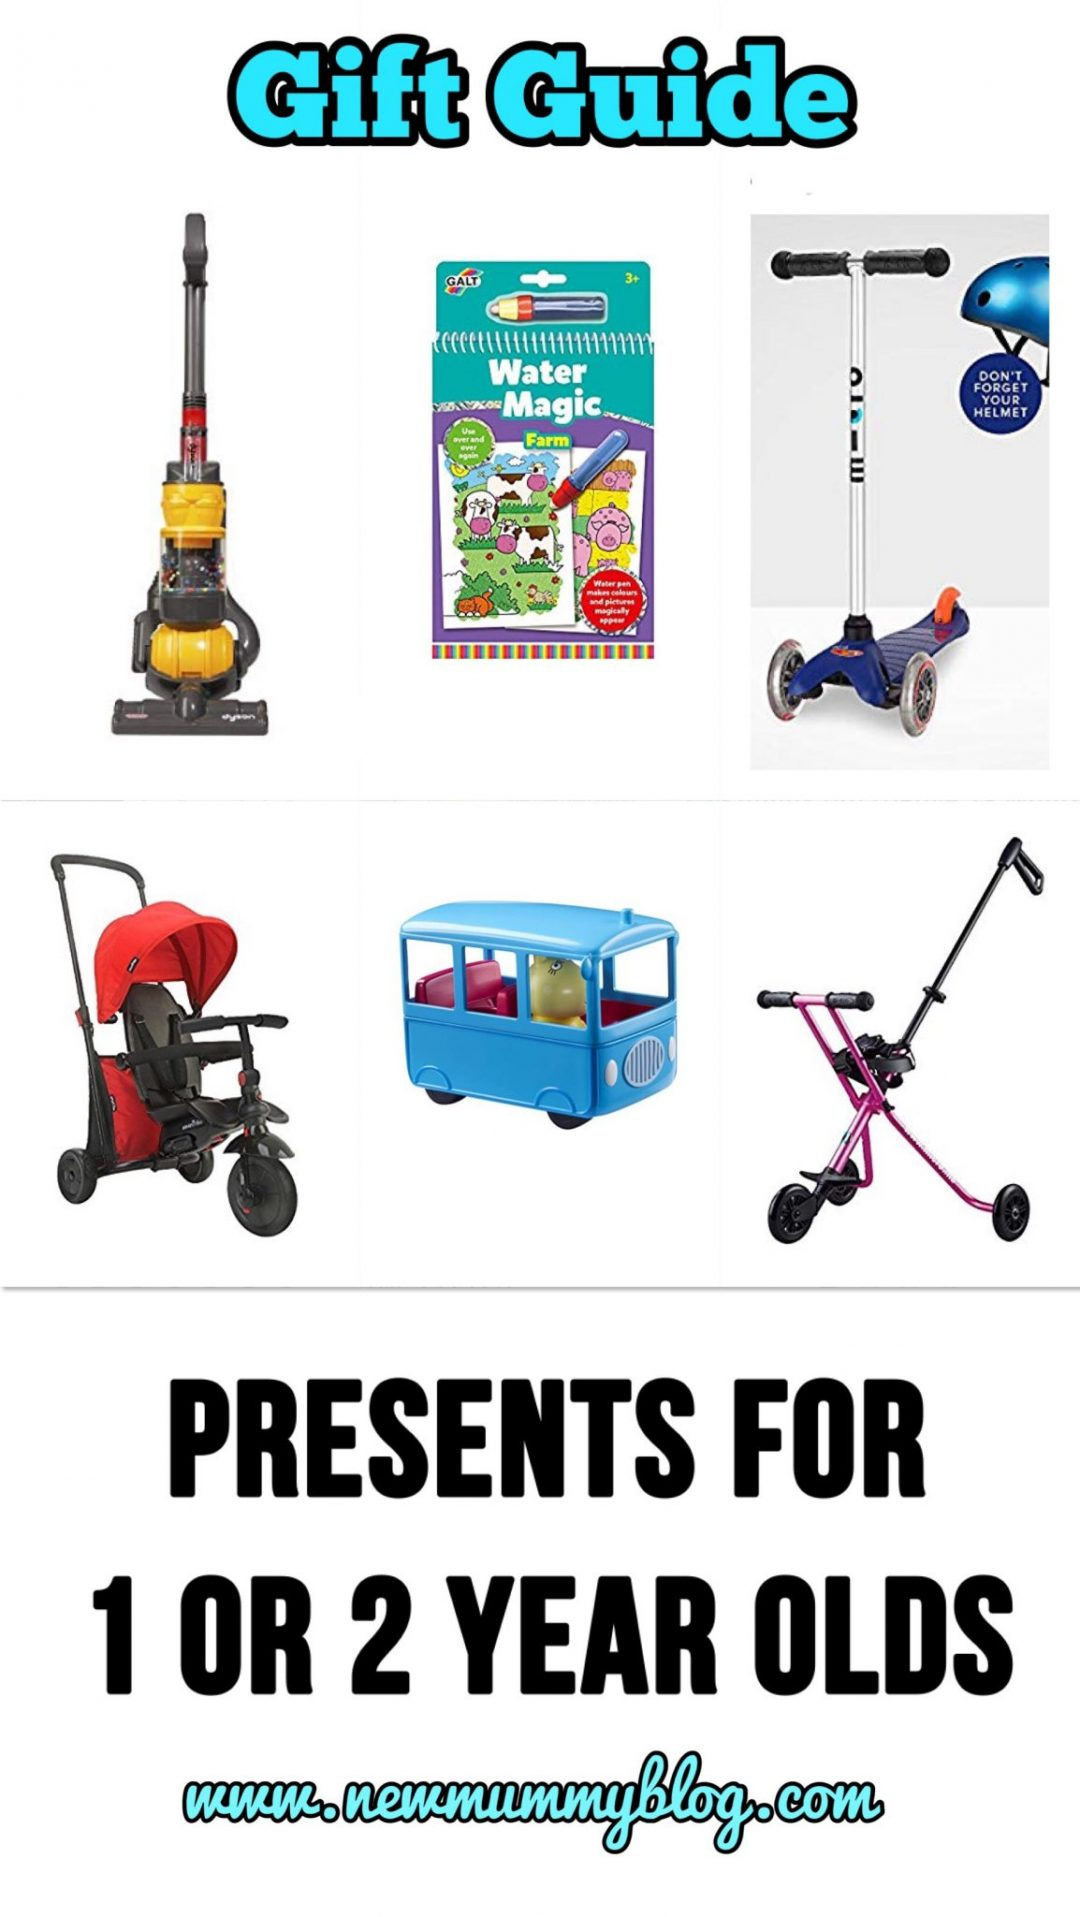 1 year old present, gift 2 year old, imaginative play, gift guide, gift for 1 year old, present for 1 year old, present for 2 year old